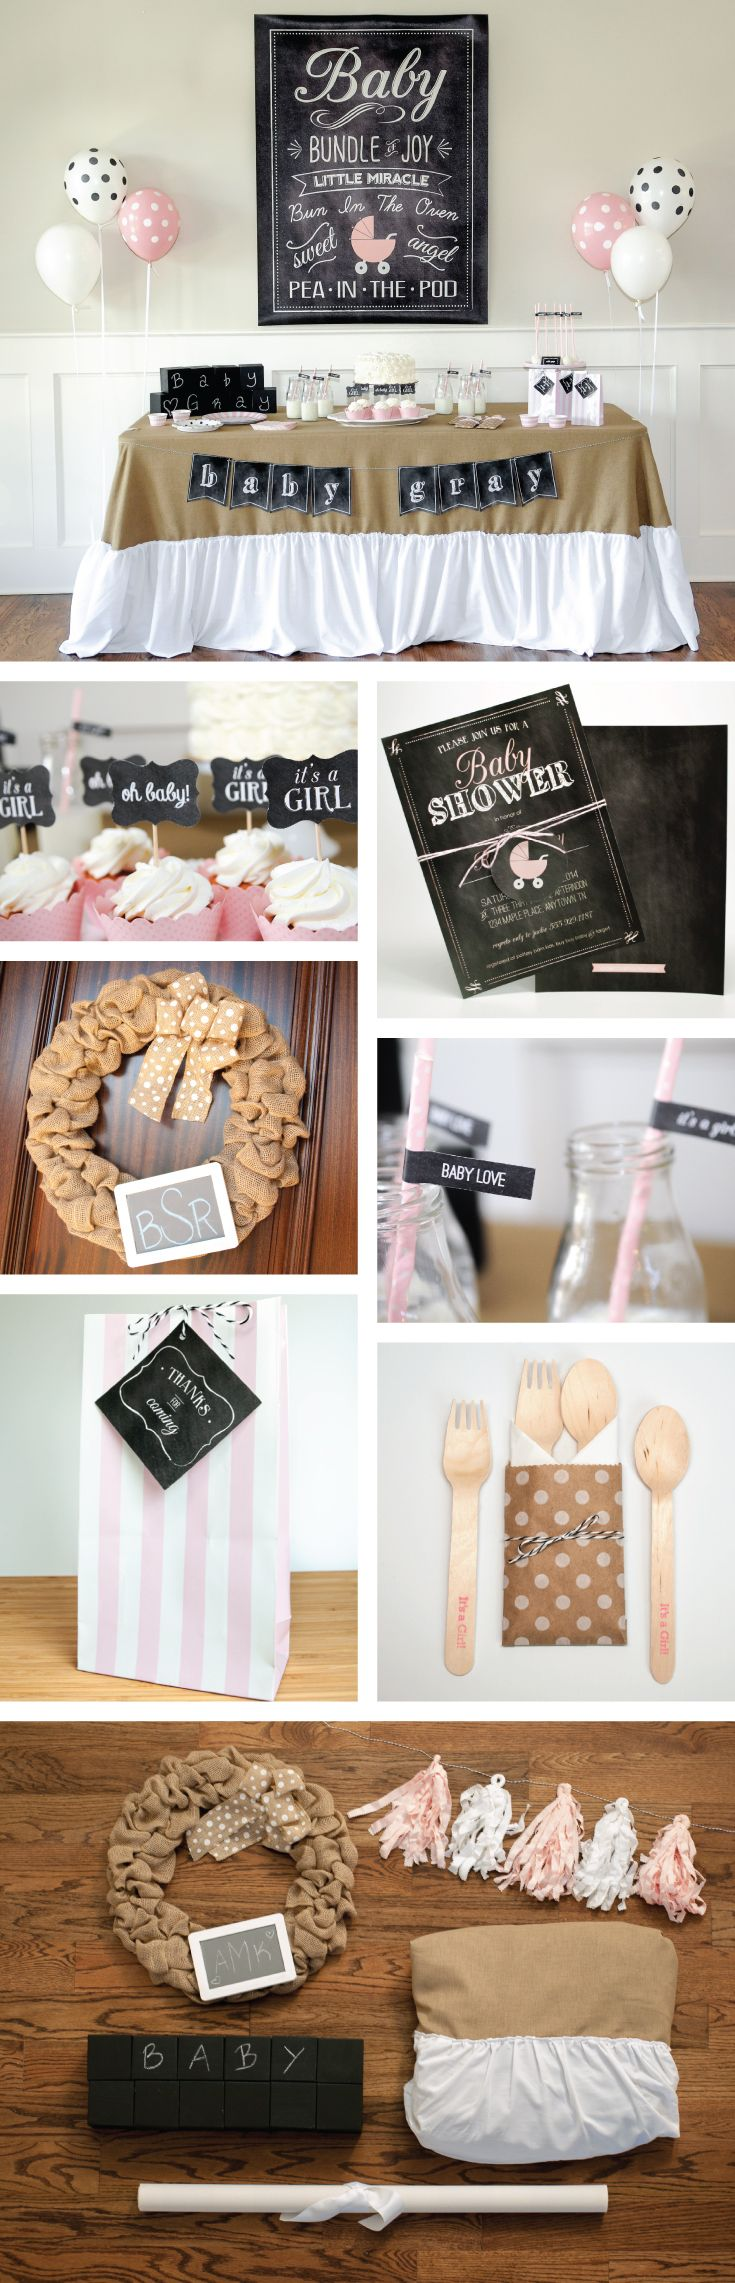 Pink, chalkboard and burlap baby shower theme and decorations | Baby shower party kit and rental items - tableware, linens and decor